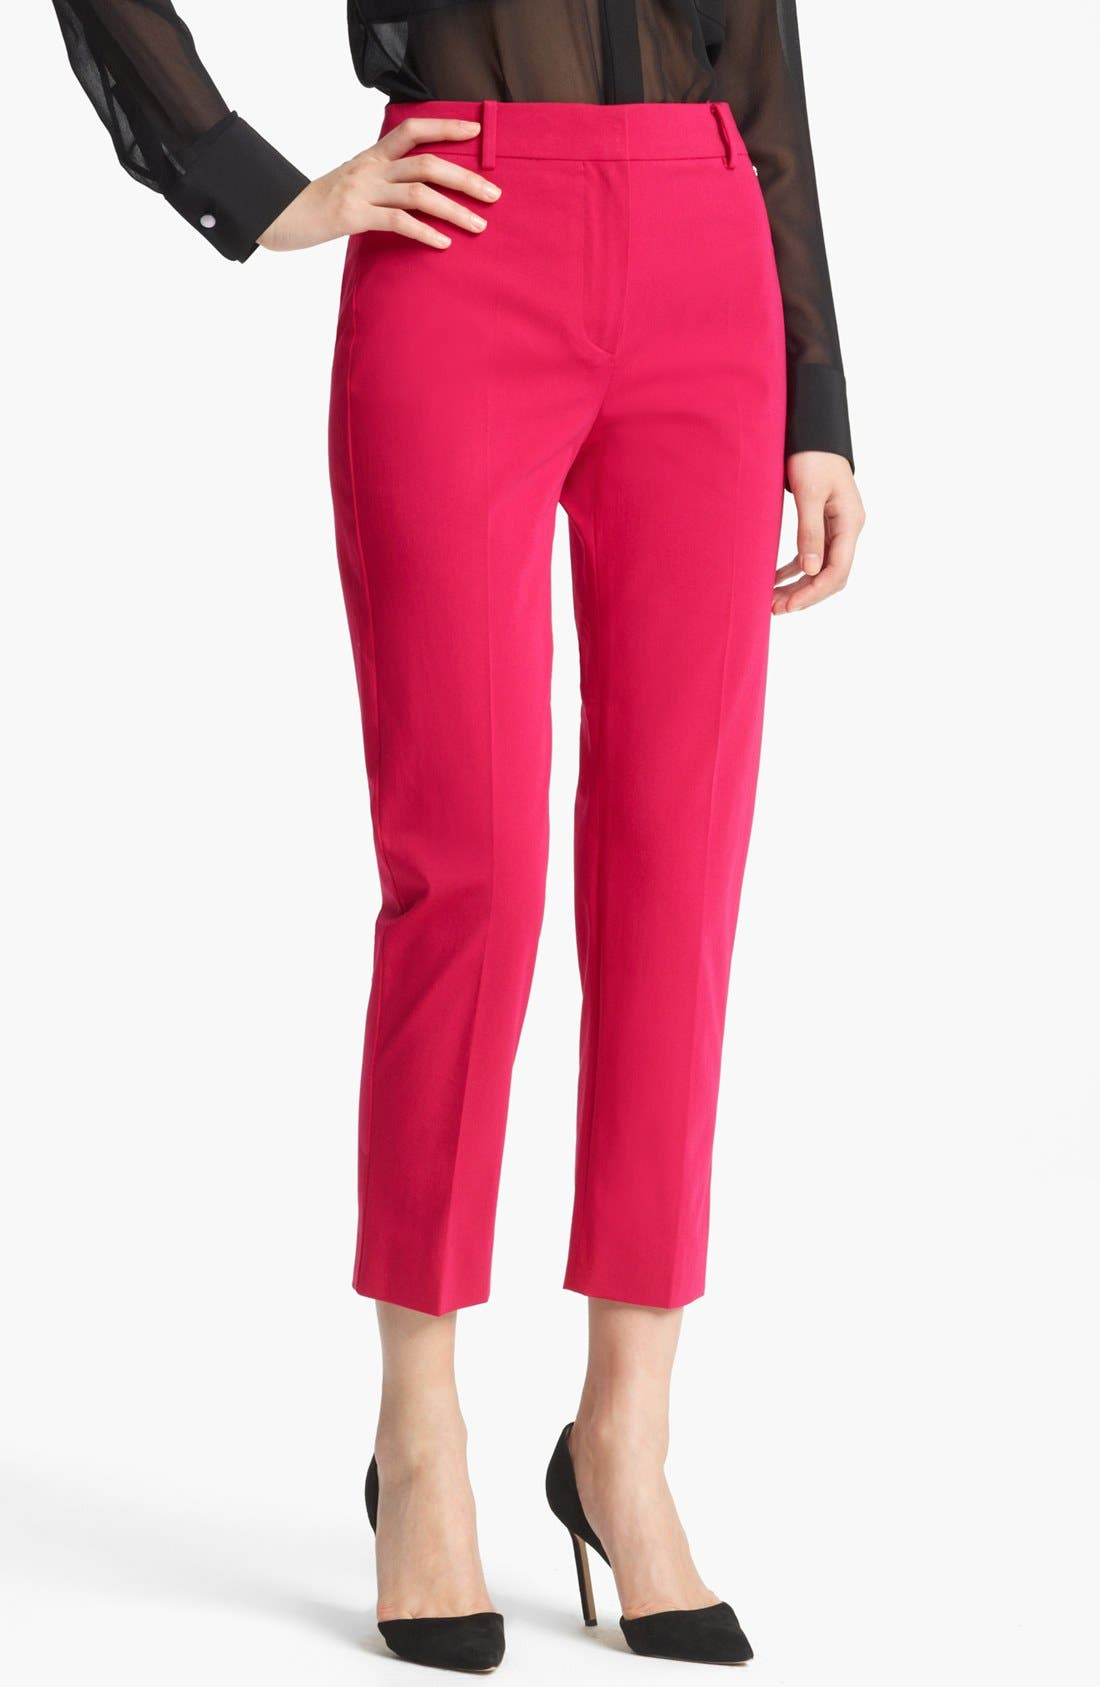 Alternate Image 1 Selected - Max Mara 'Genova' Stretch Cotton Crop Pants